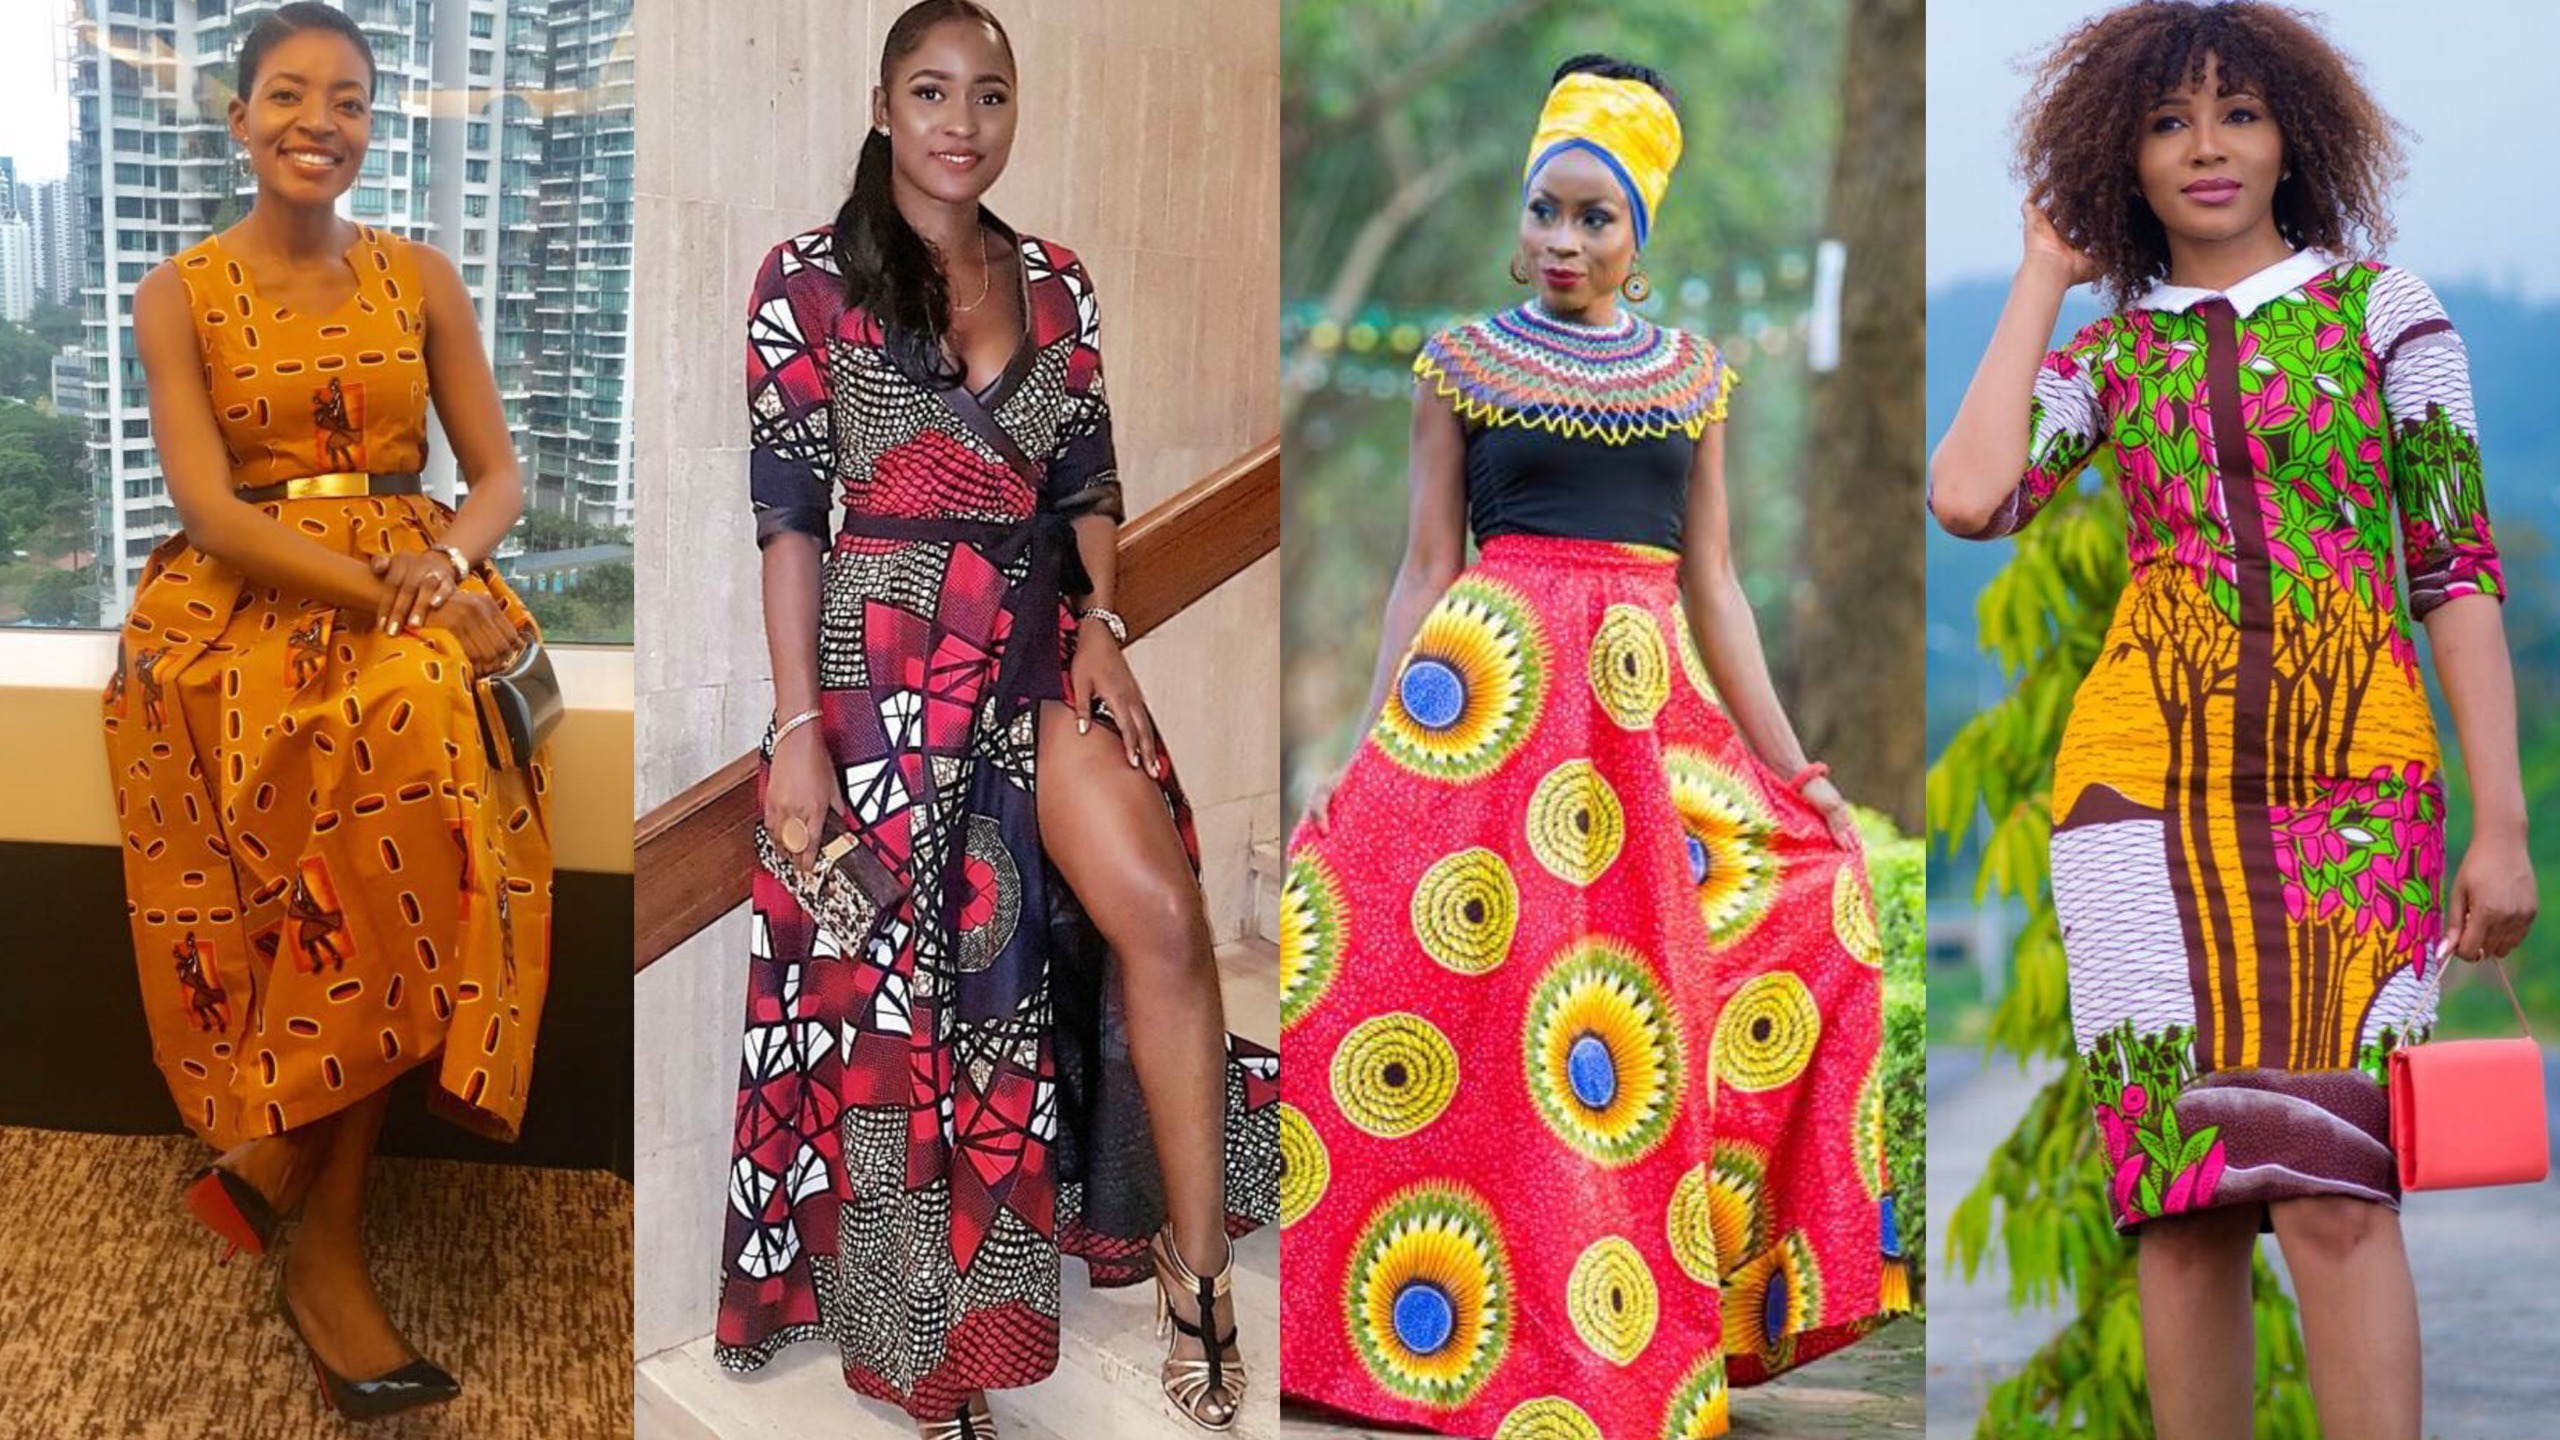 #237 Slay Queens: Printastic Dresses For 2018 Style Inspiration